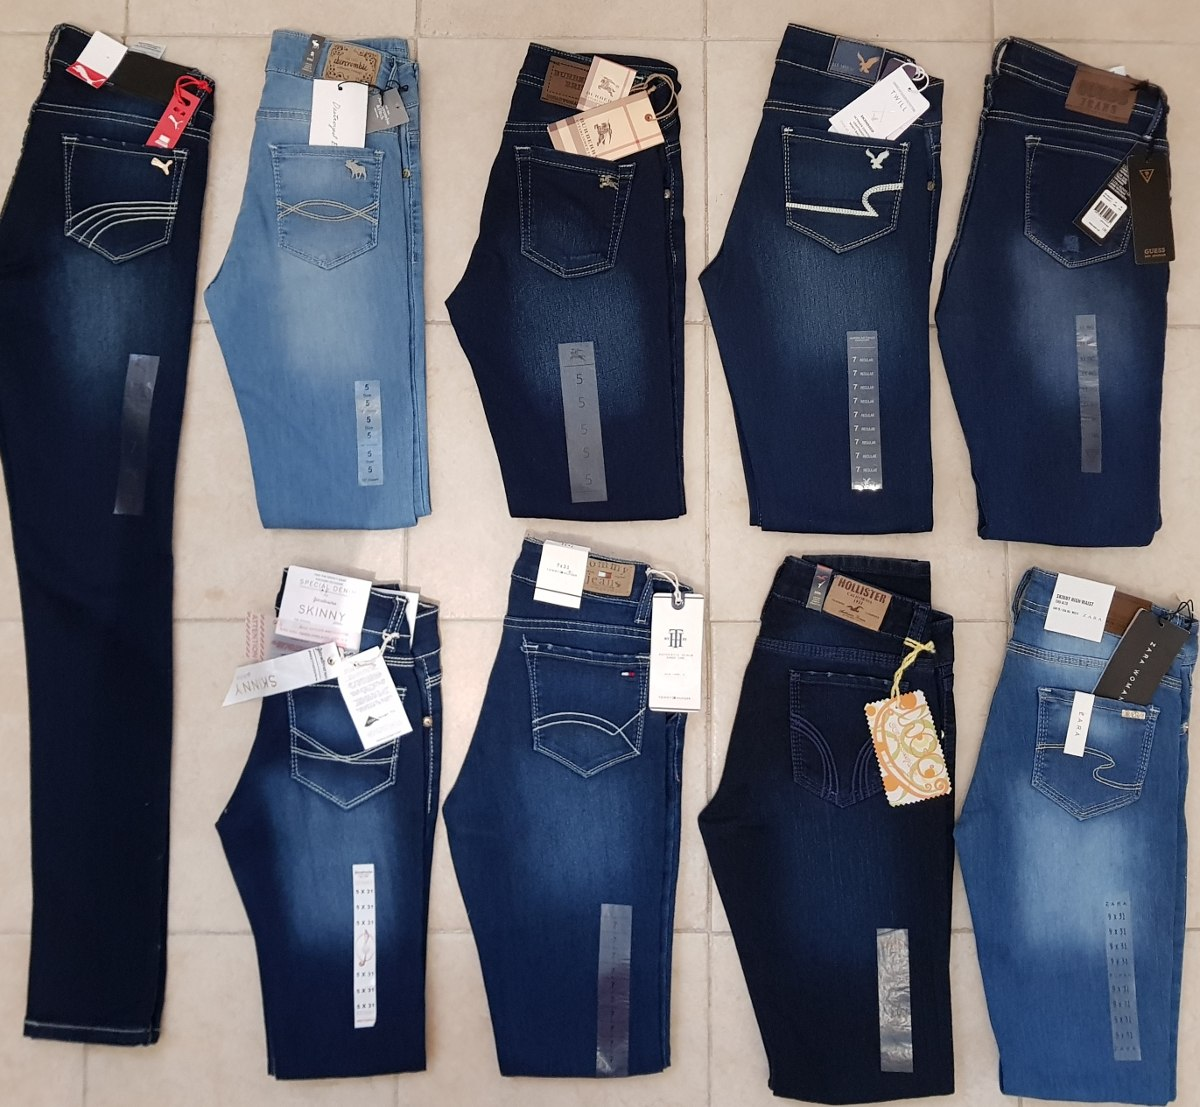 3 pantalones dama hollister guess aeropostale levis tommy 999 00